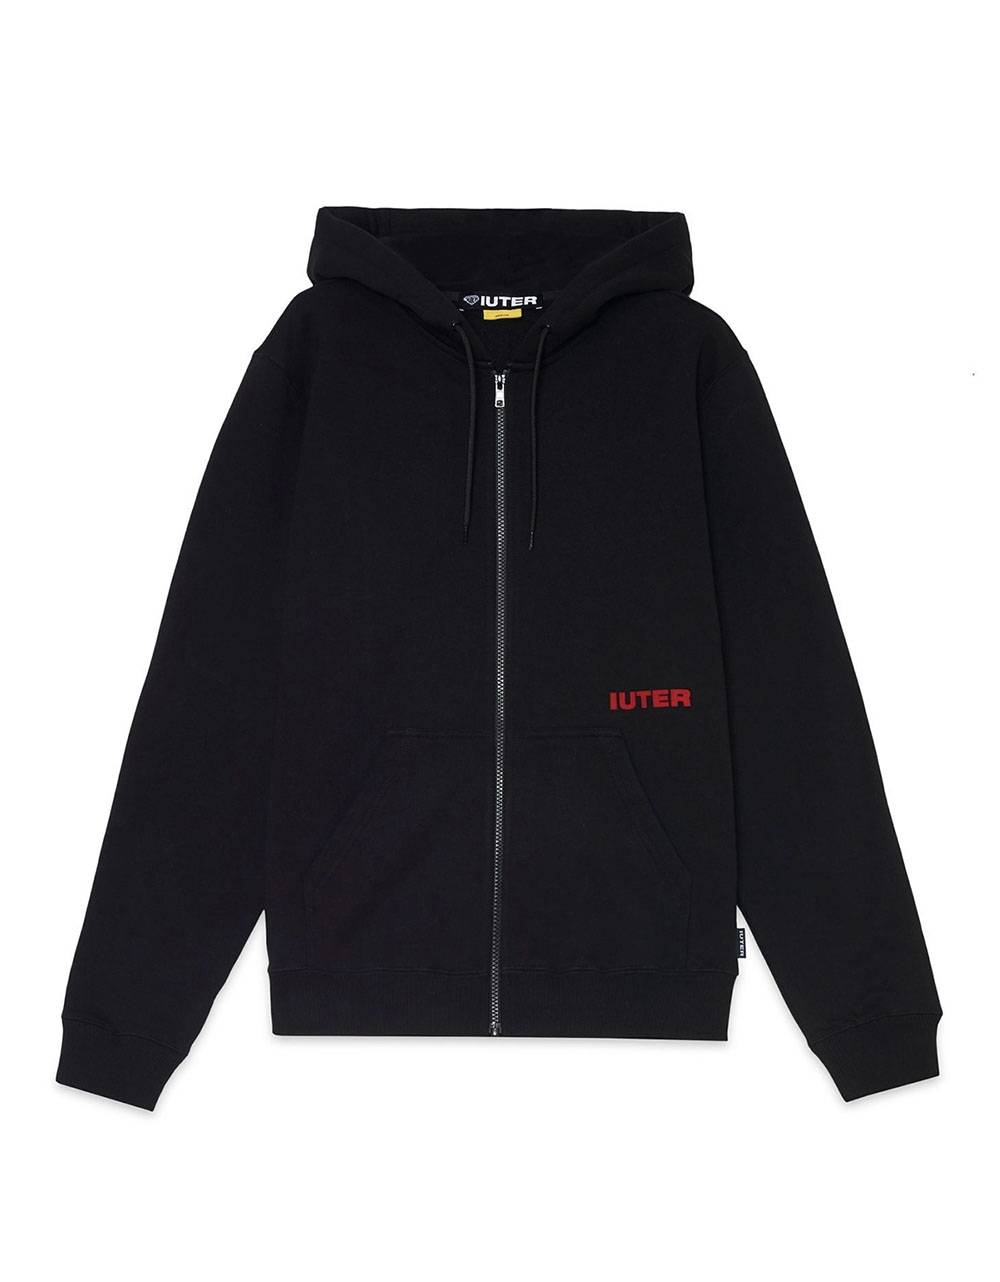 Iuter Double logo zip hoodie - Black IUTER Sweater 81,15 €